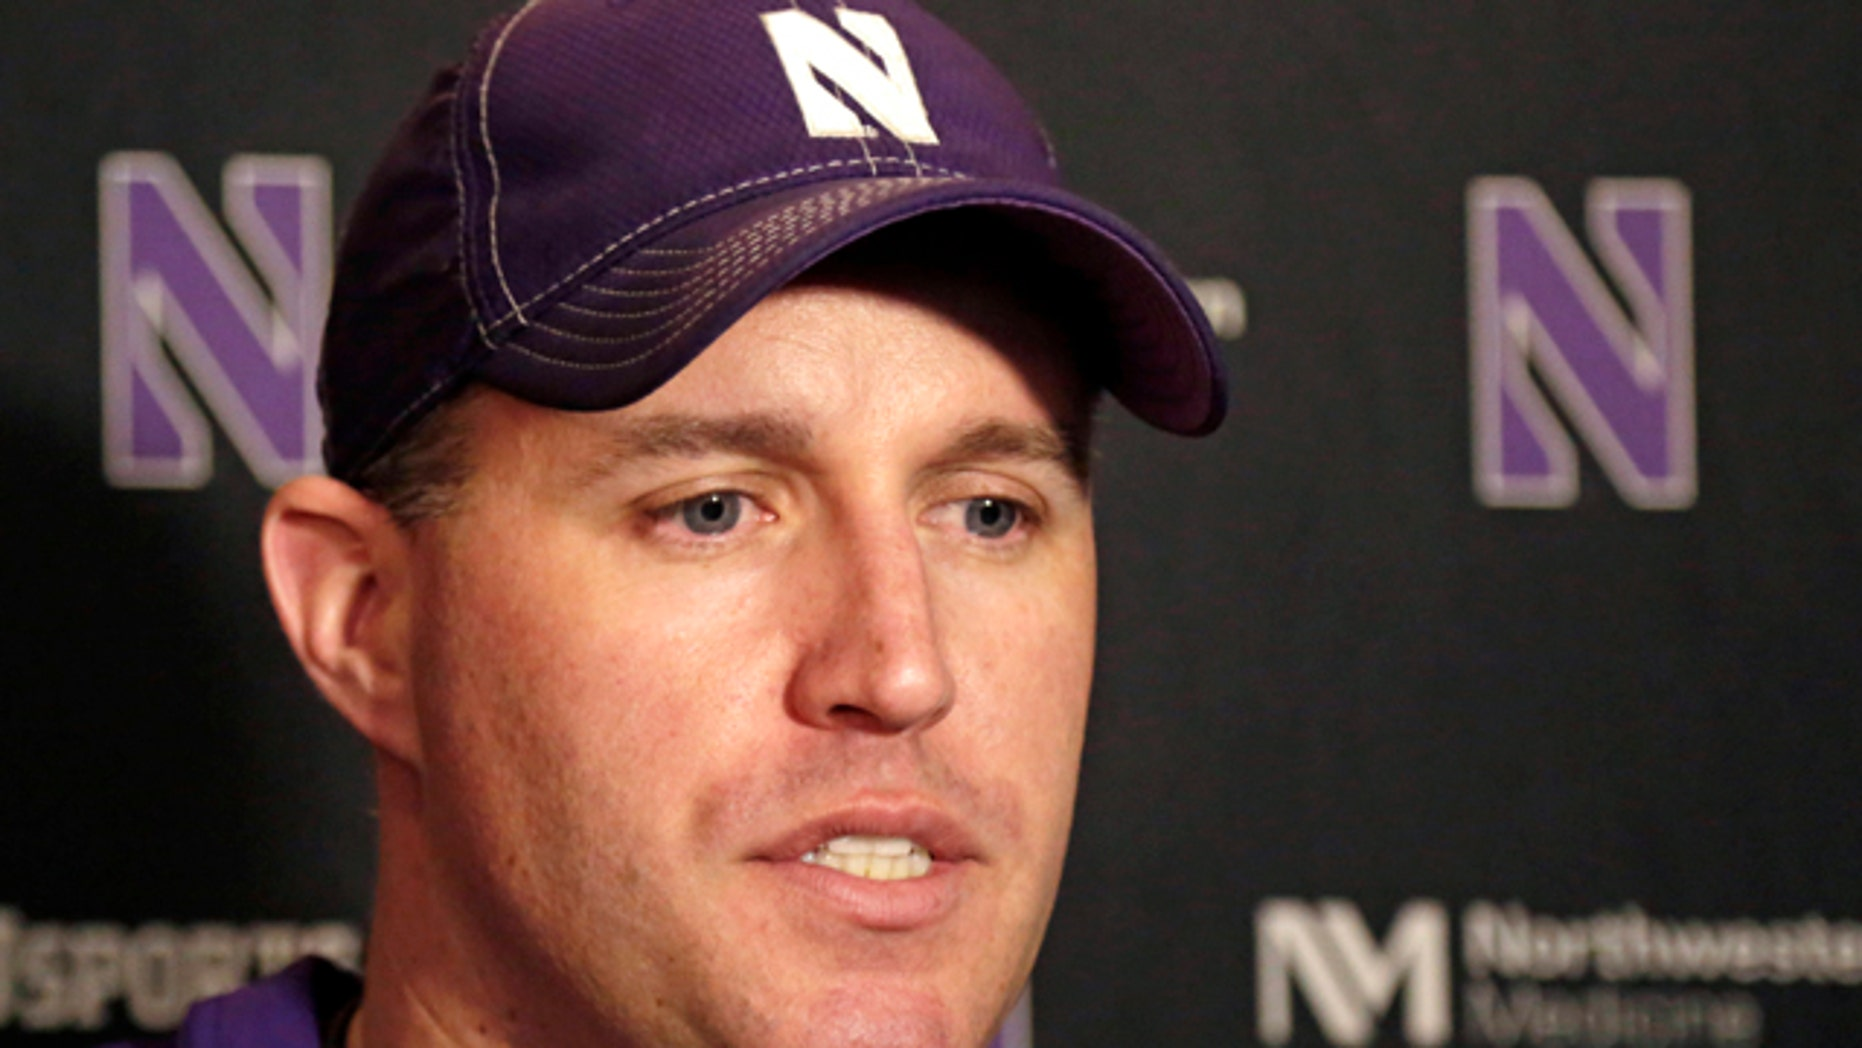 April 1, 2014: Northwestern head football coach Pat Fitzgerald speaks at a news conference after his football team participated in an NCAA college spring football practice in Evanston, Ill. (AP Photo/M. Spencer Green, File)